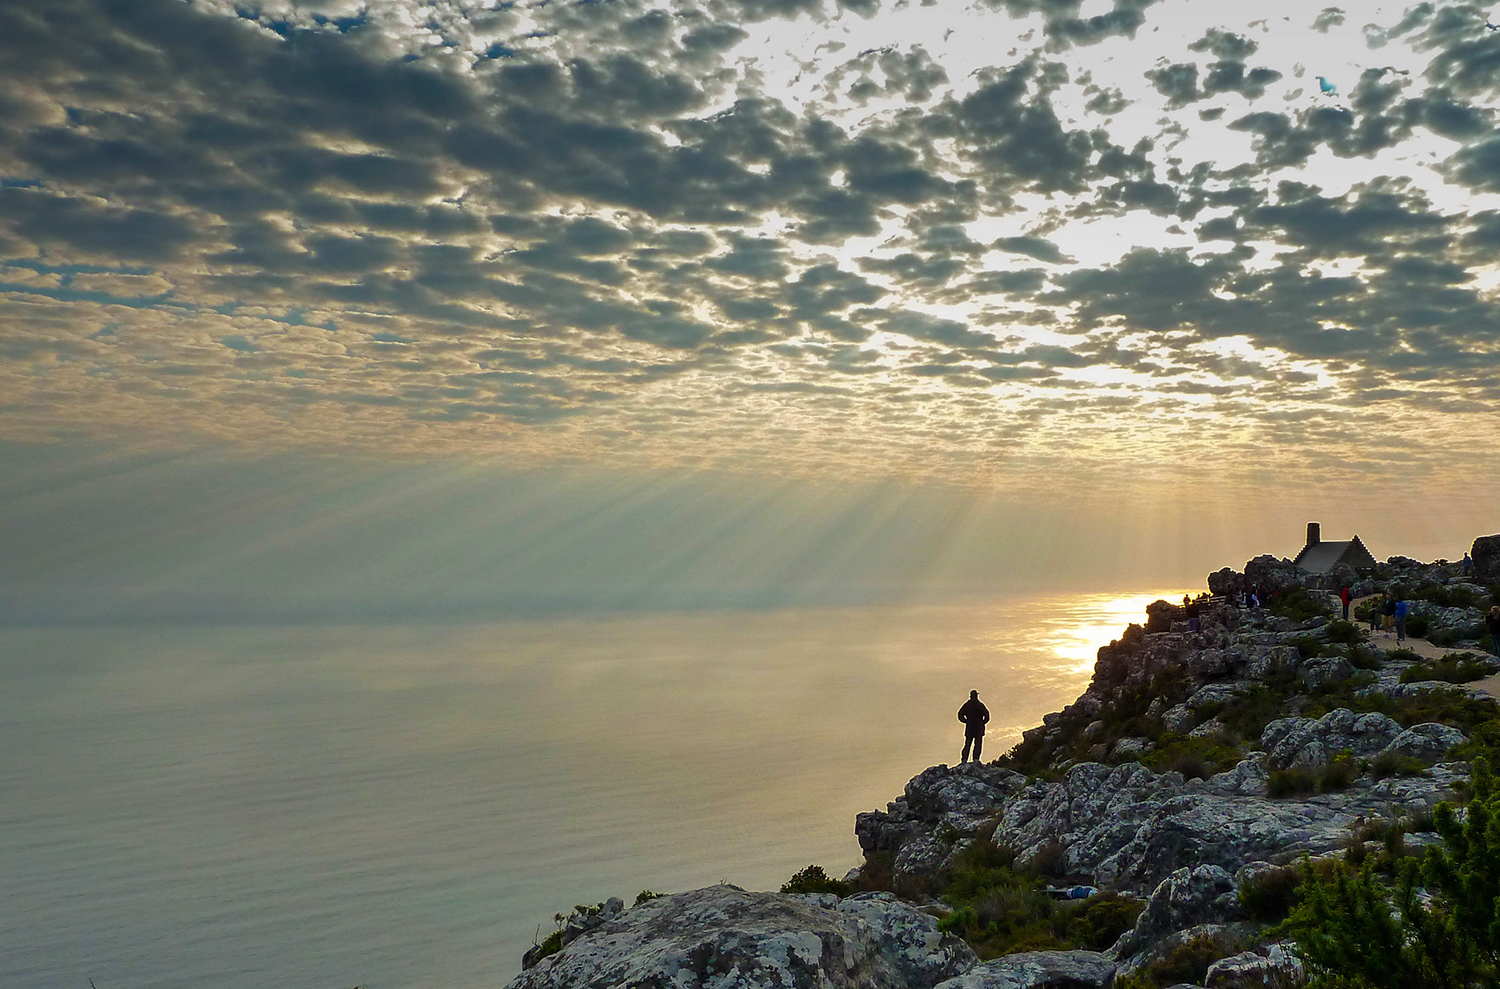 <p>A person enjoys the spectacular views over Cape Town and the ocean from atop Table Mountain. The sky was amazing that day.</p>